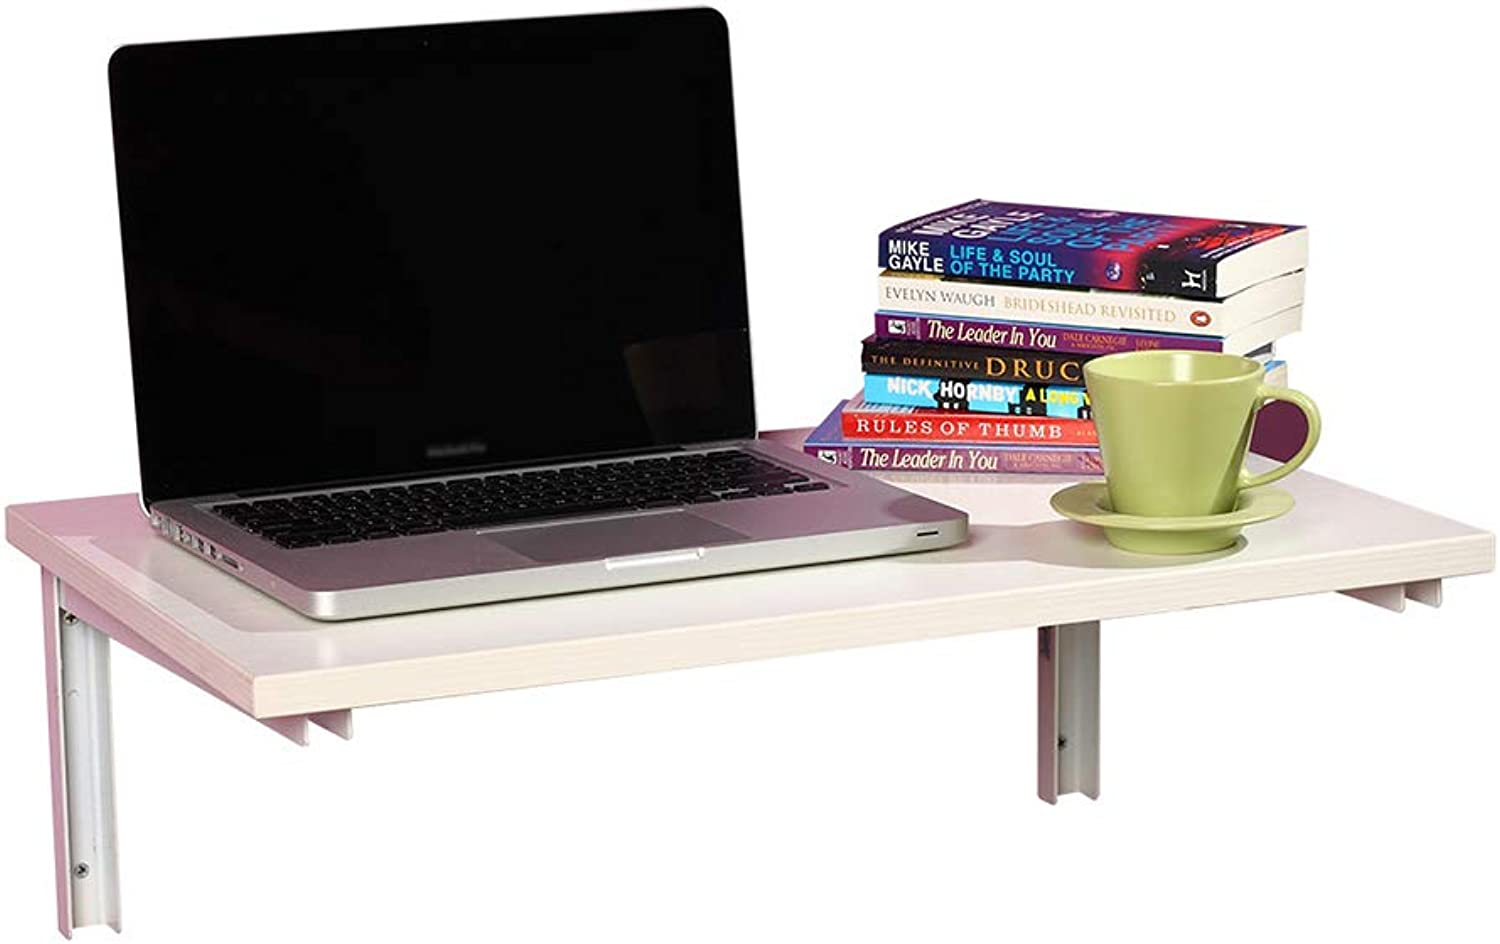 PENGFEI Wall-Mounted Table Laptop Stand Desk Folding Wall Table Dining Table Multifunction Kitchen Study Office, 2 colors, 2 Sizes (color   White, Size   60x40CM)